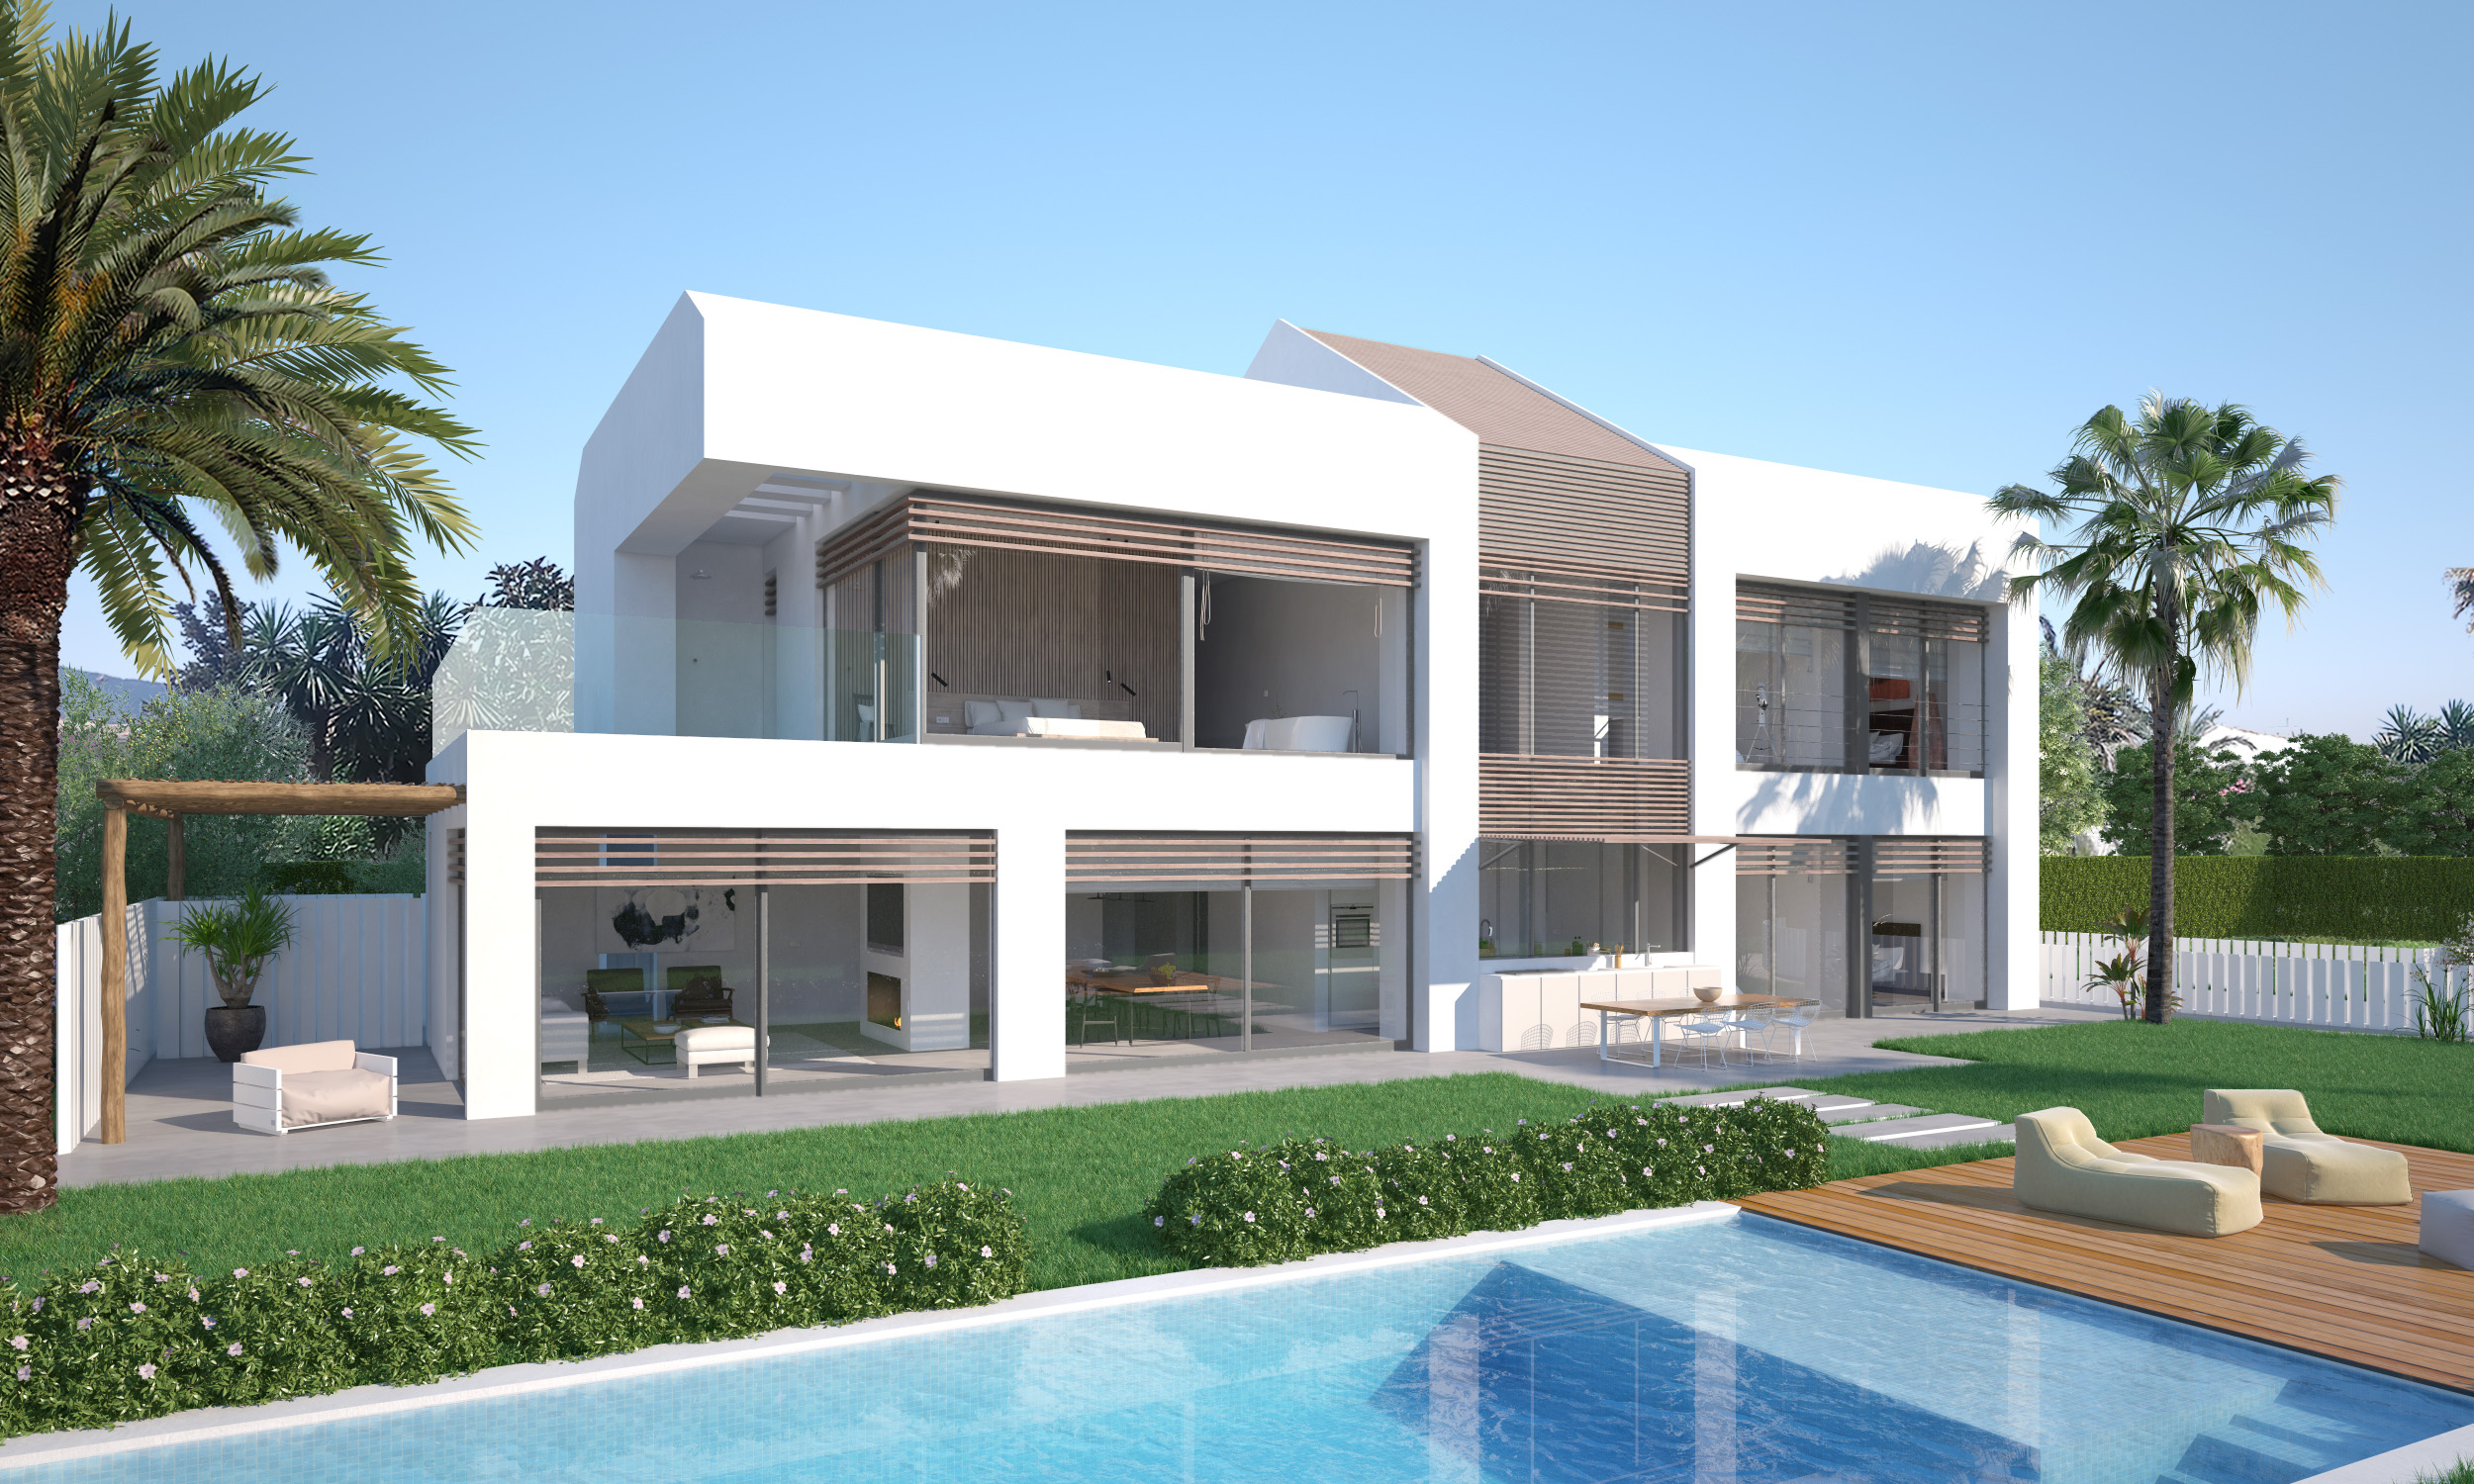 Imare villa beachfront